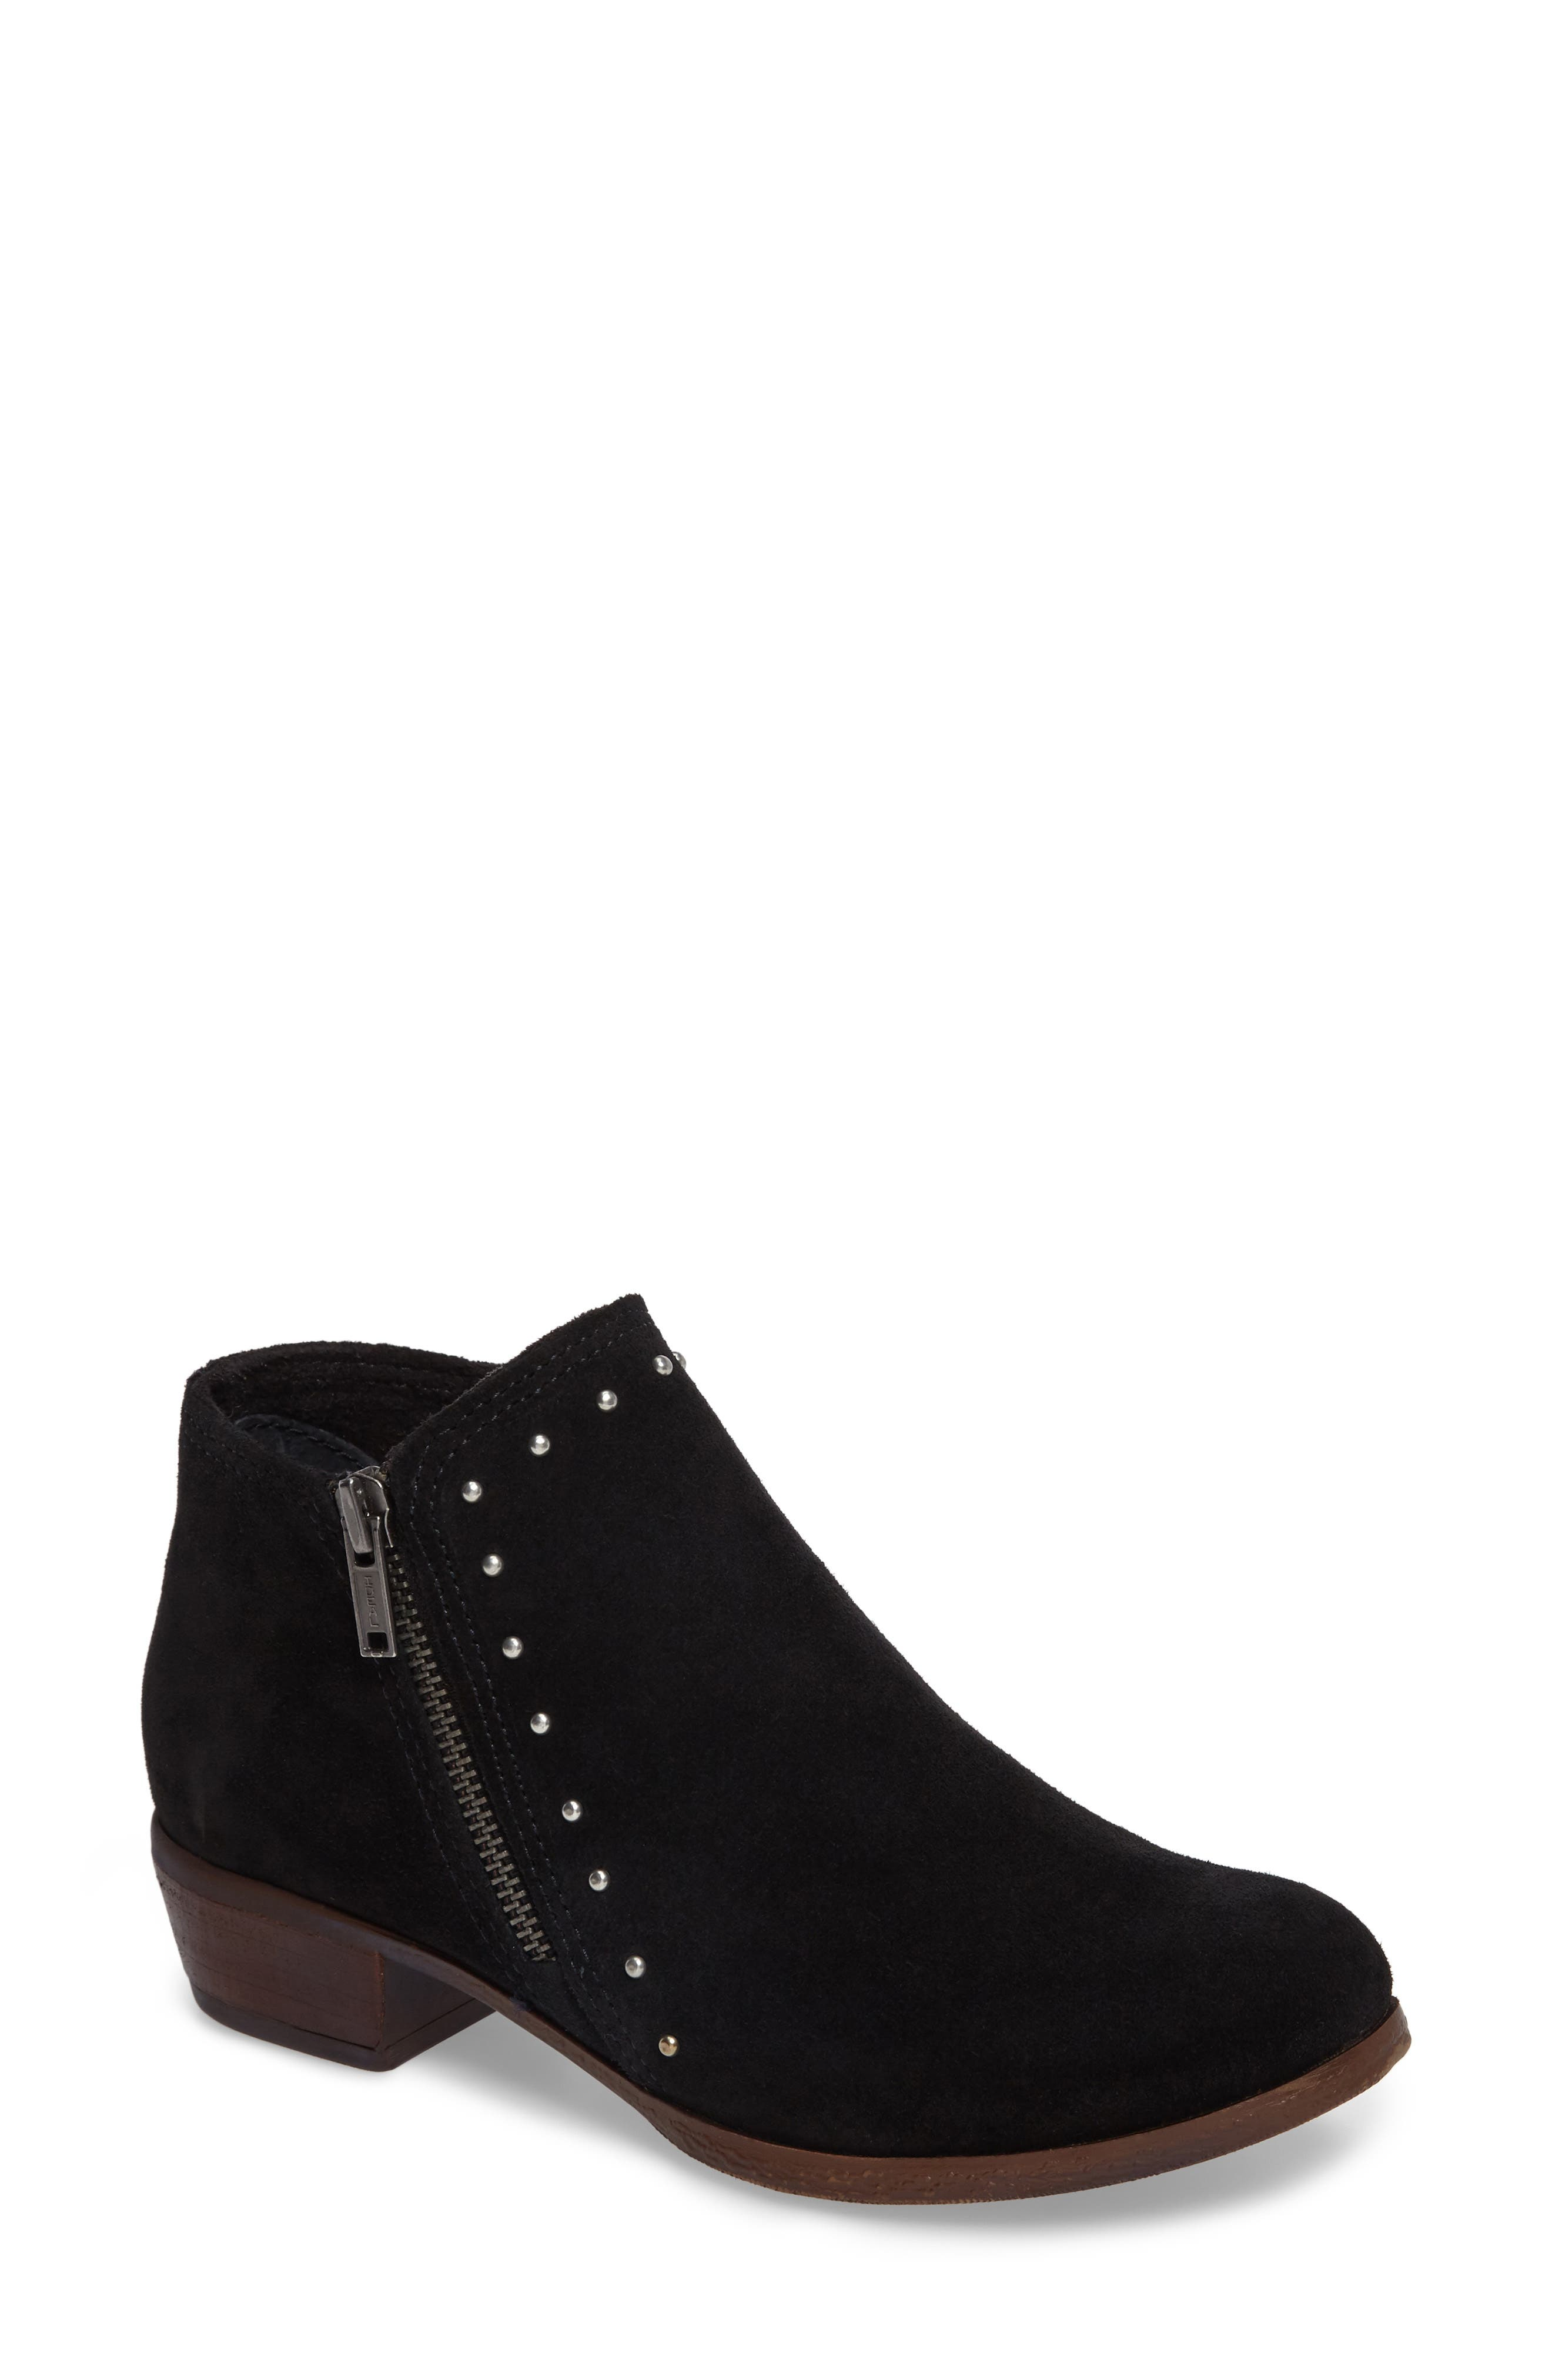 MINNETONKA Brie Studded Bootie, Main, color, BLACK